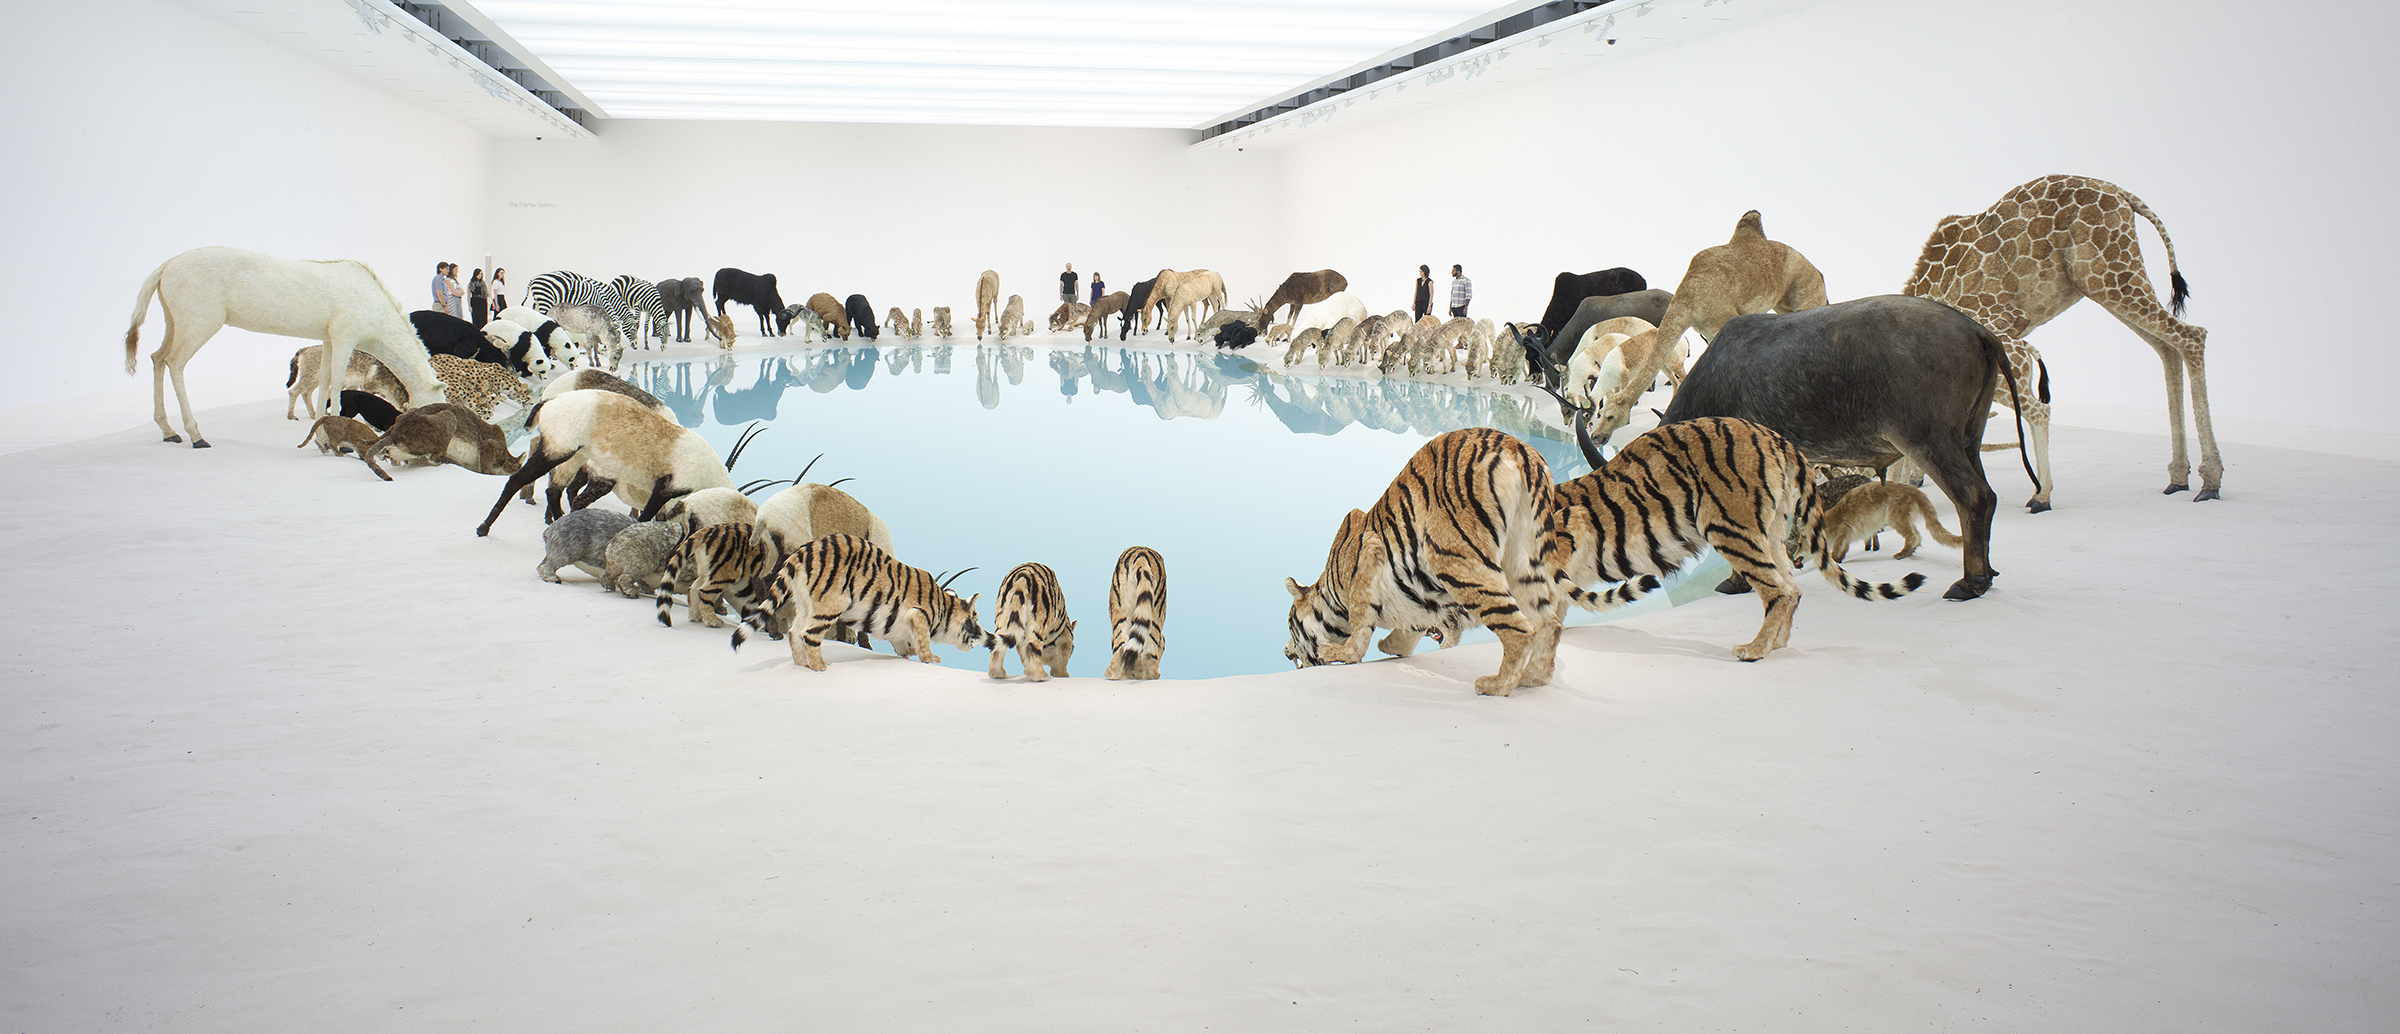 Heritage, by Cai Guo-Qiang, 2013. Ninety-nine life-size polystyrene, gauze, resin, and hide replicas of animals; installed dimensions variable. © Cai Guo-Qiang, courtesy Queensland Art Gallery | Gallery of Modern Art. Commissioned 2013 with funds from the